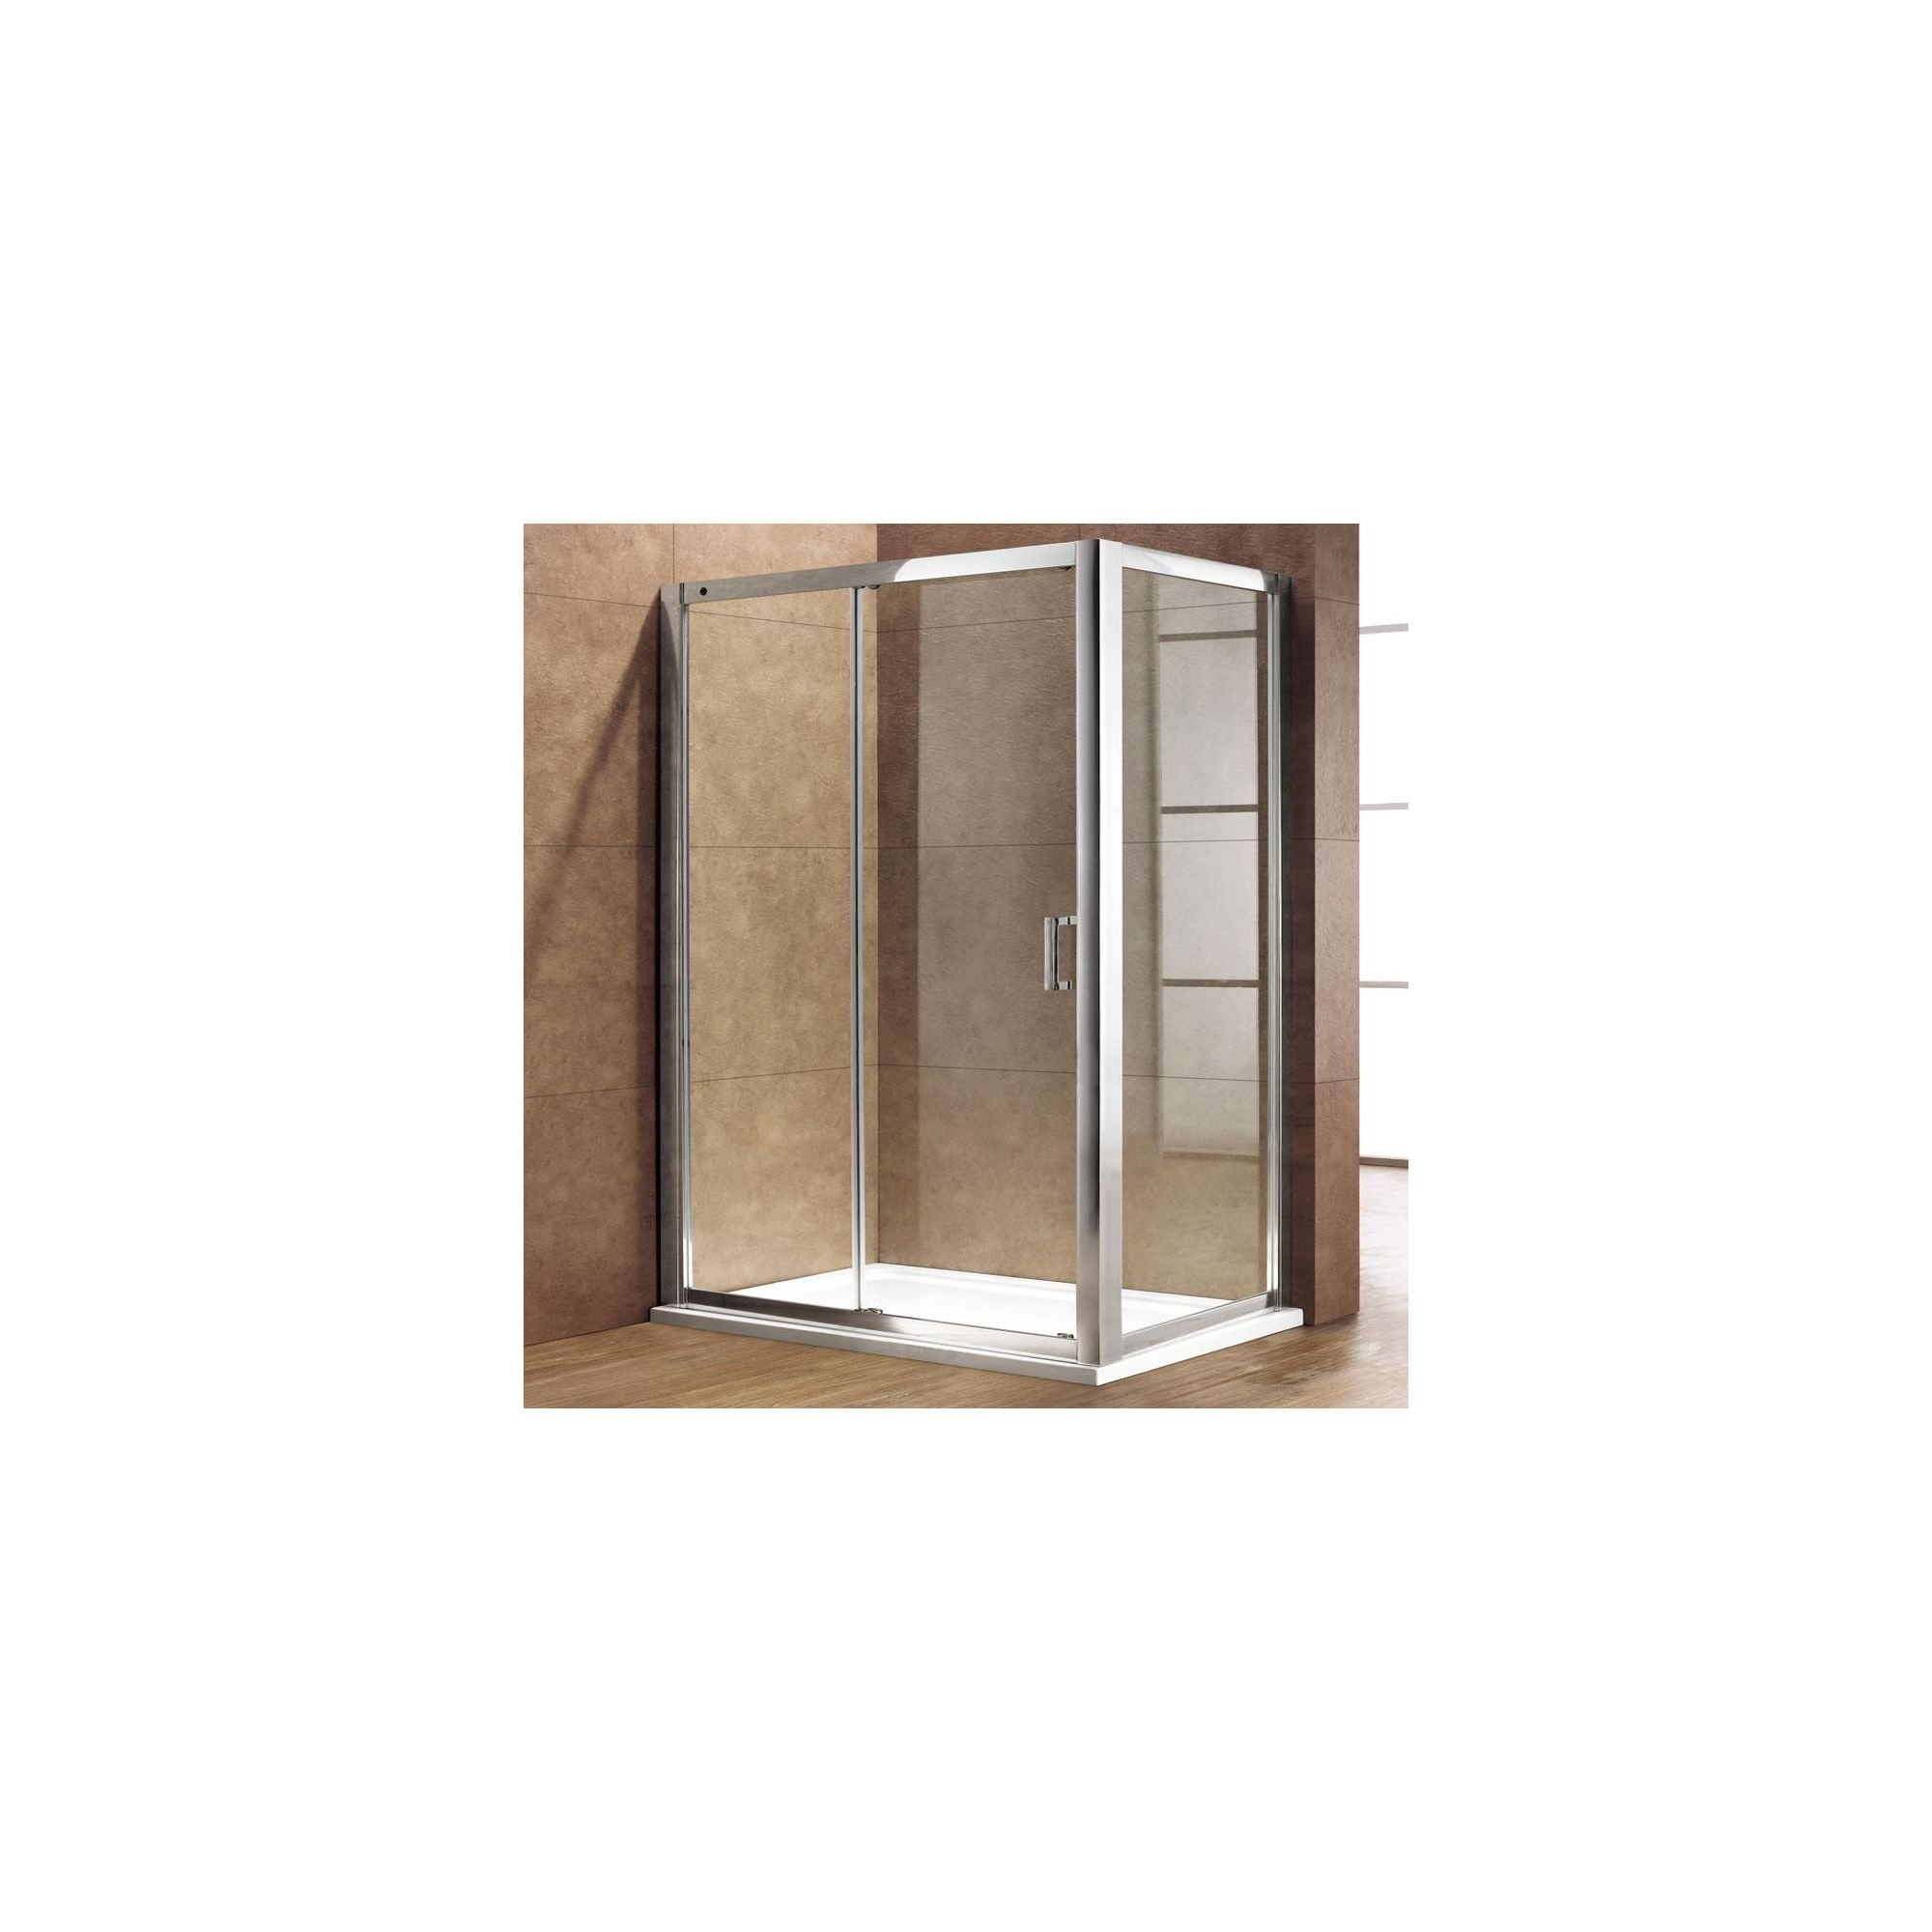 Duchy Premium Single Sliding Shower Door, 1000mm Wide, 8mm Glass at Tesco Direct